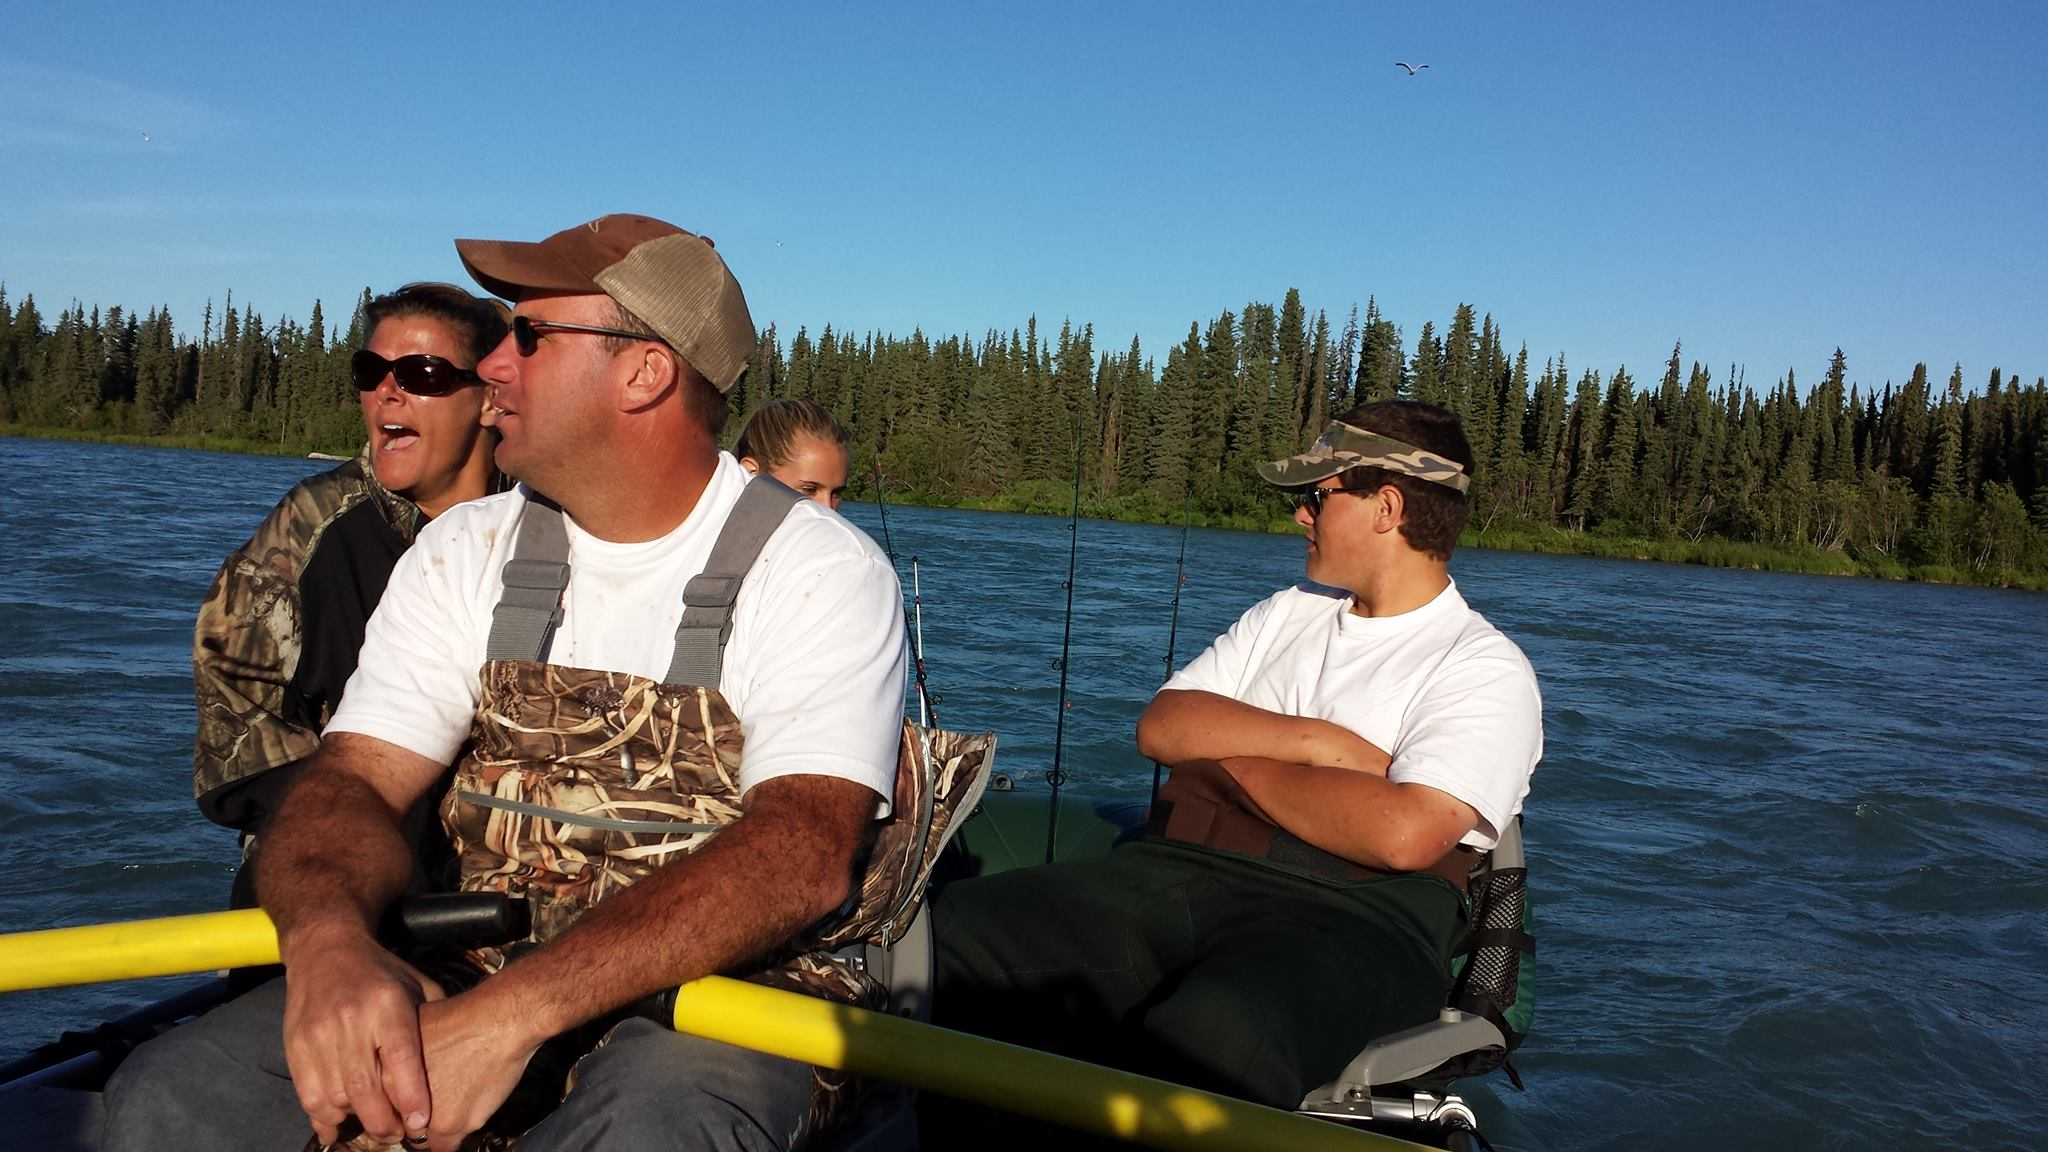 Family fishing trip on the Kenai